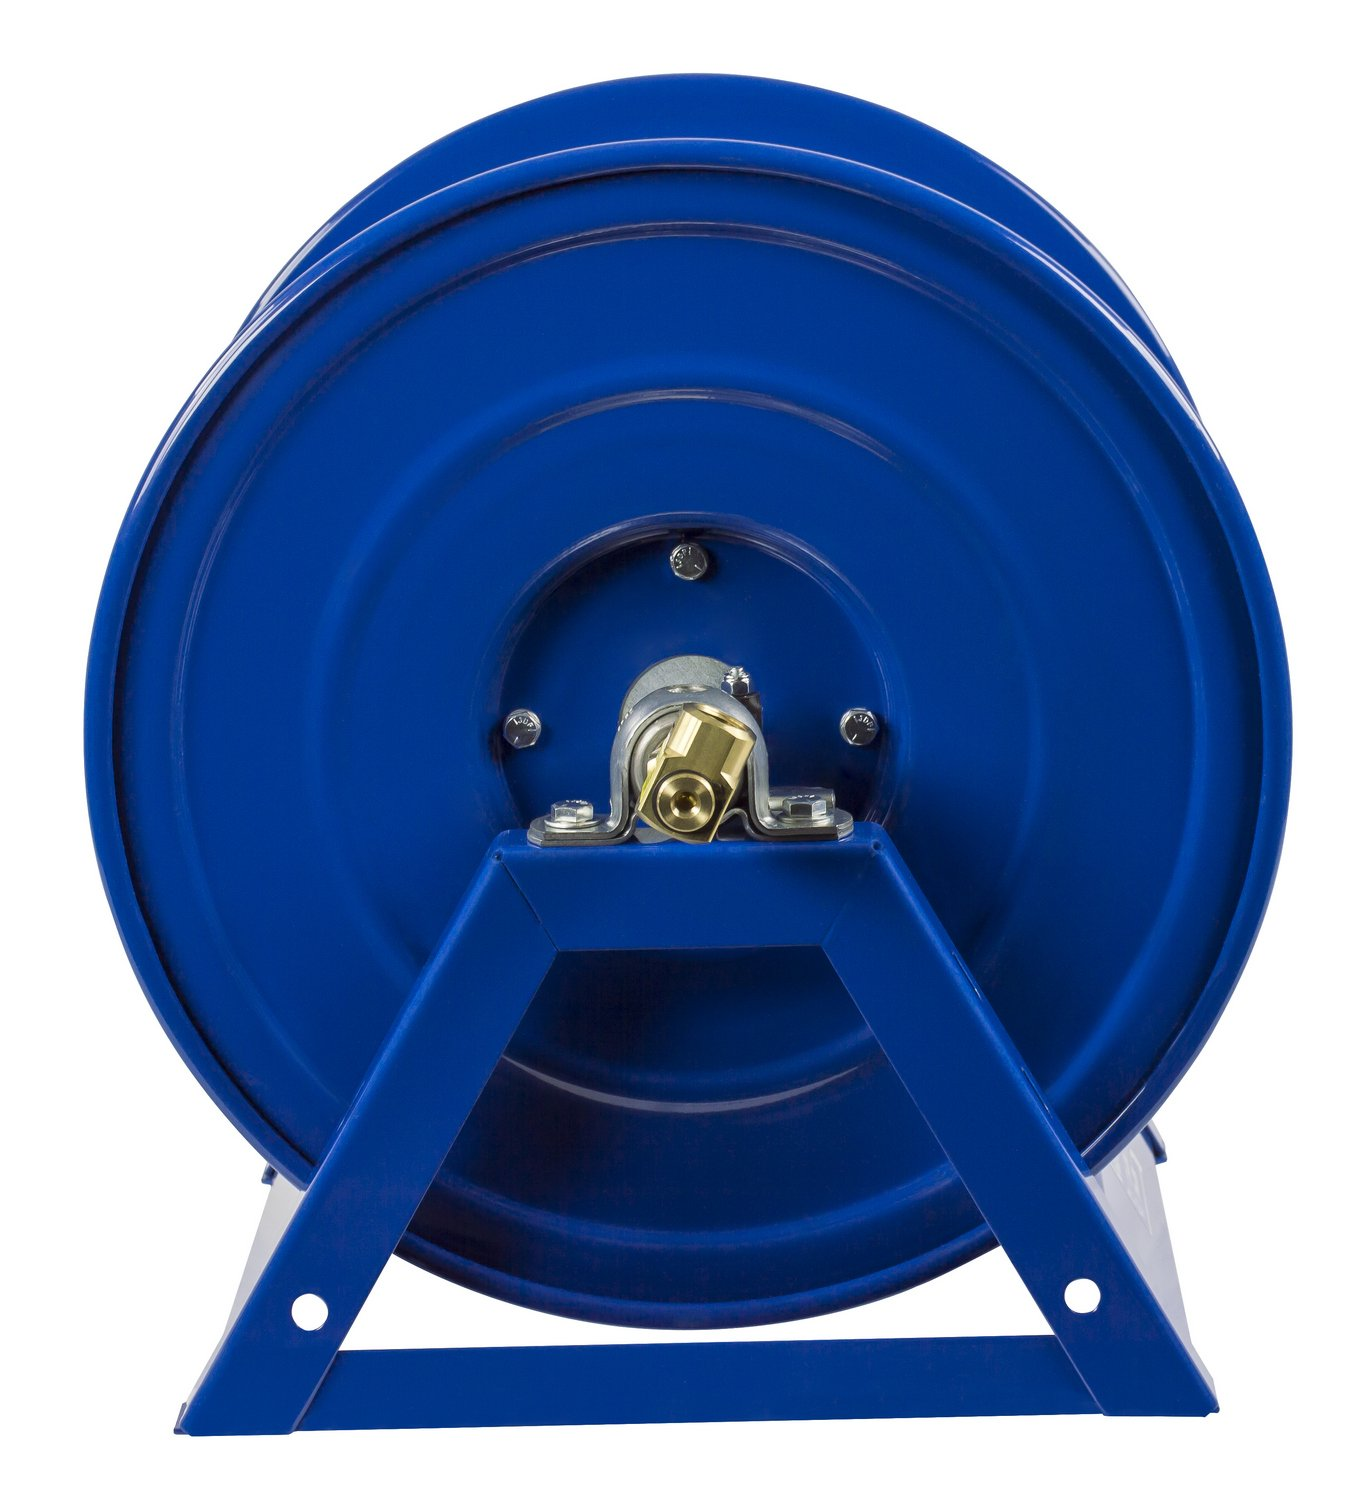 Coxreels 1125-4-100 Steel Hand Crank Hose Reel, 1/2'' Hose I.D., 100' Hose Capacity, 3,000 PSI, without Hose, Made in USA by Coxreels (Image #4)